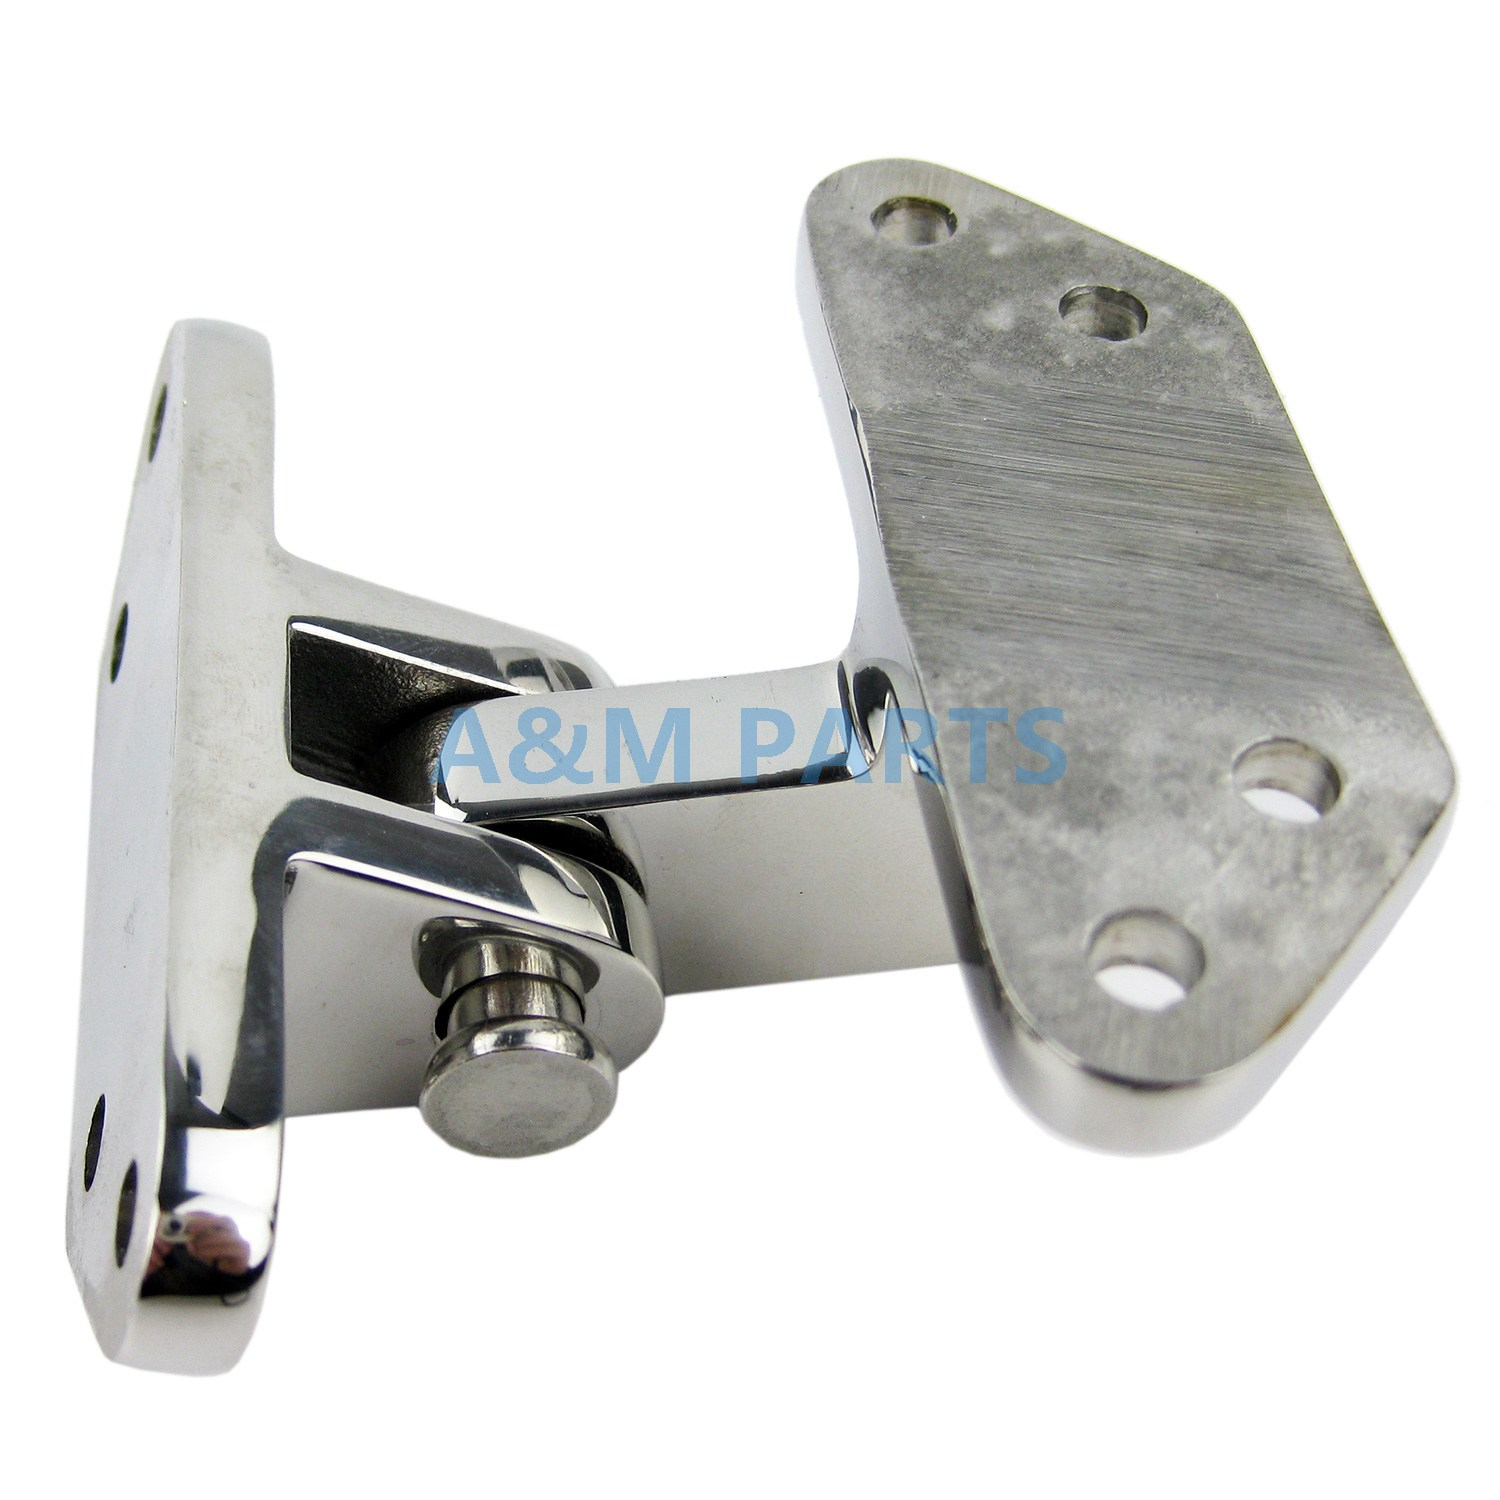 US $16 64 24% OFF|Marine Boat Stainless Steel Hatch Hinge w/ Removable Pin  Solid Cast Hatch Hinge-in Marine Hardware from Automobiles & Motorcycles on